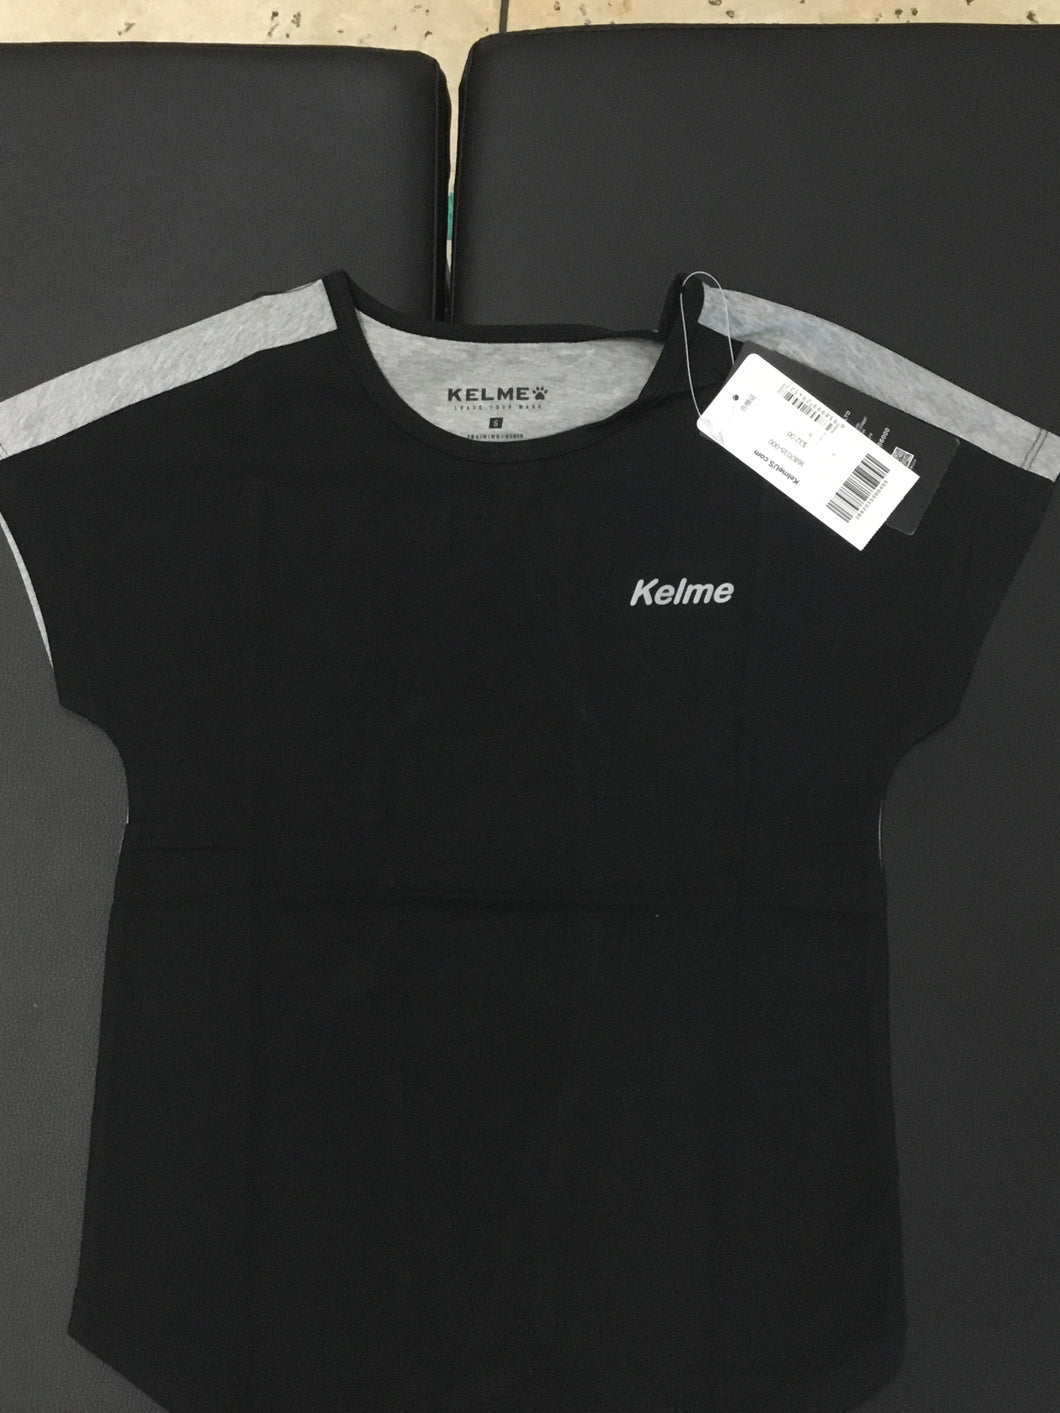 3682035-000 Women's T-Shirt \ Black